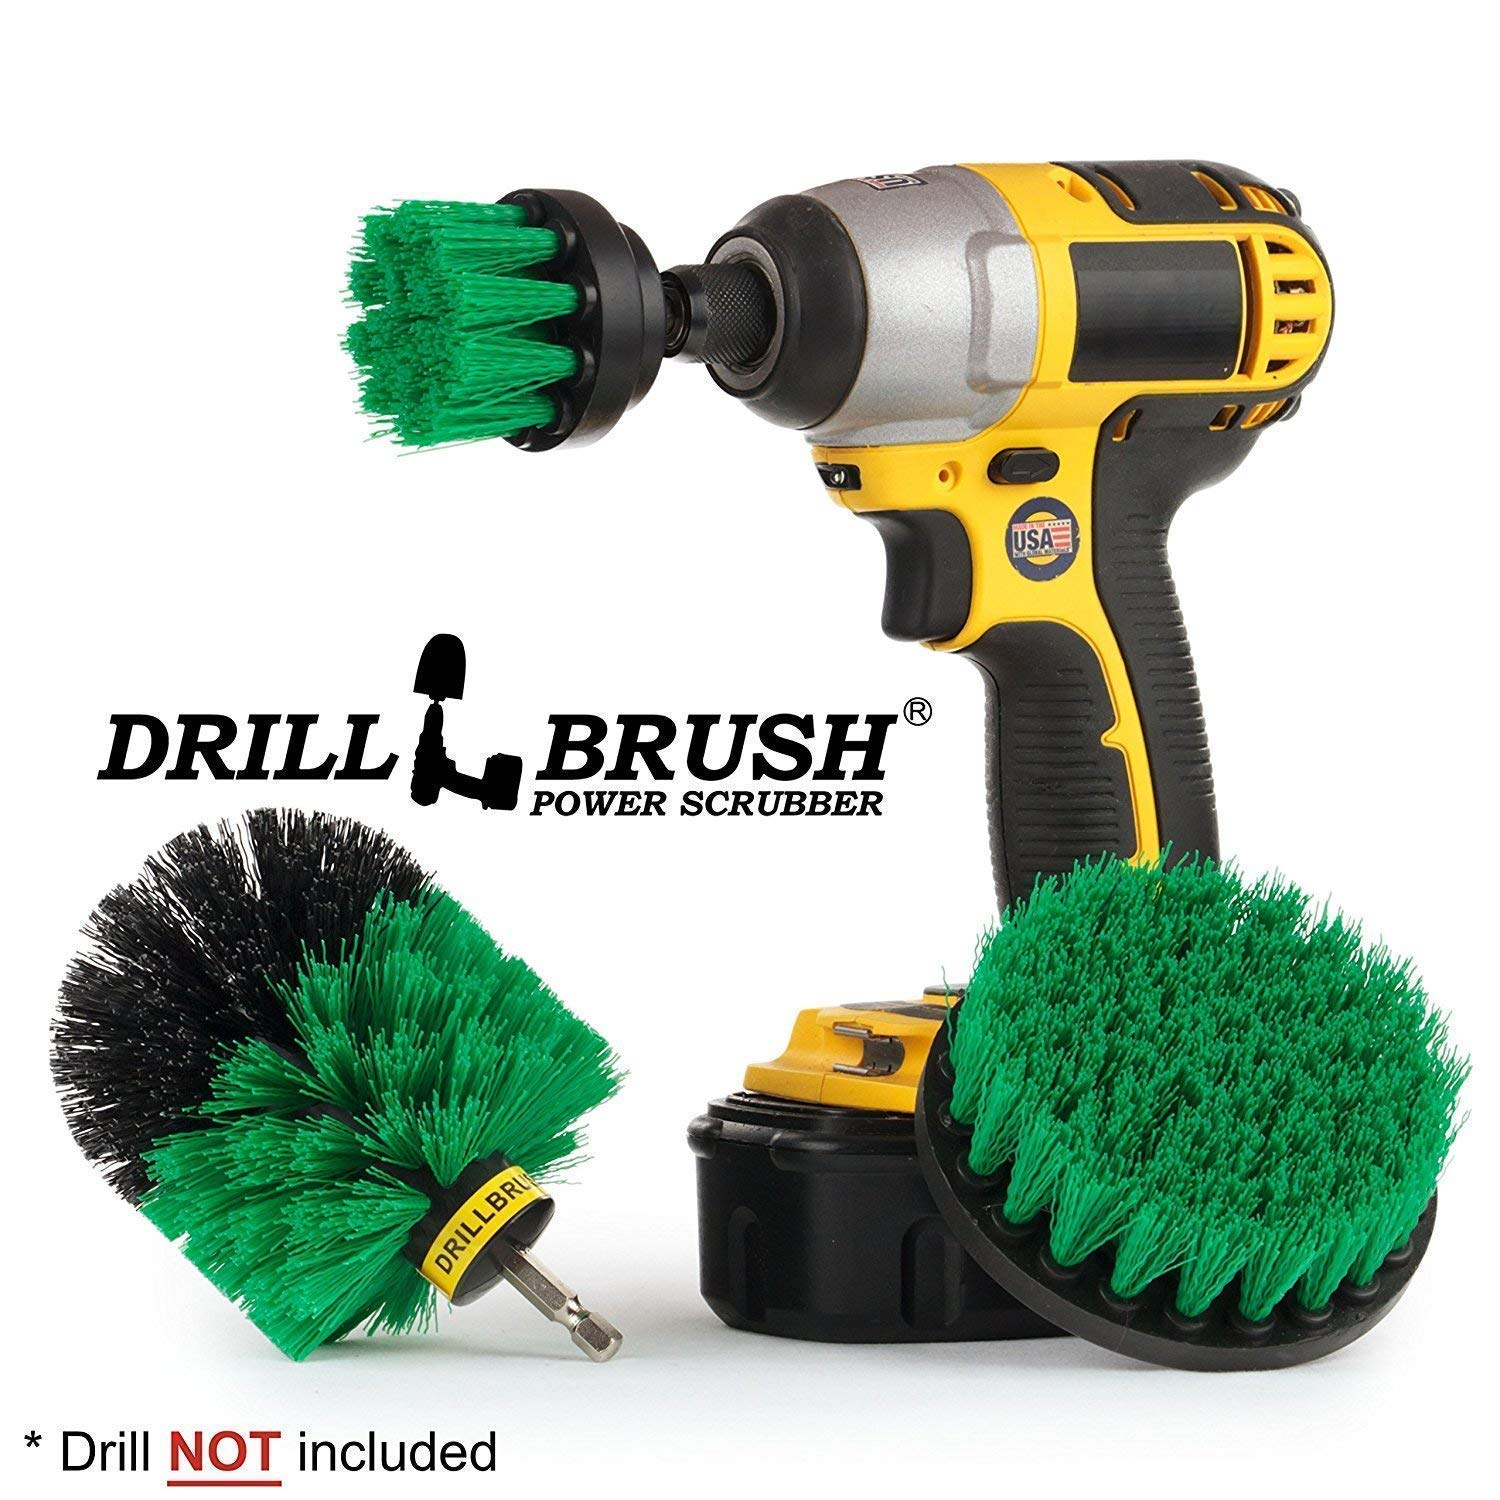 Drillbrush Bathroom Surfaces Tub Spin Scrubber Brush Shower Drill Brush Power Scrubber Brush For Drill Tile and Grout All Purpose Power Scrubber Cleaning Kit Toilet Brush Drill Attachment